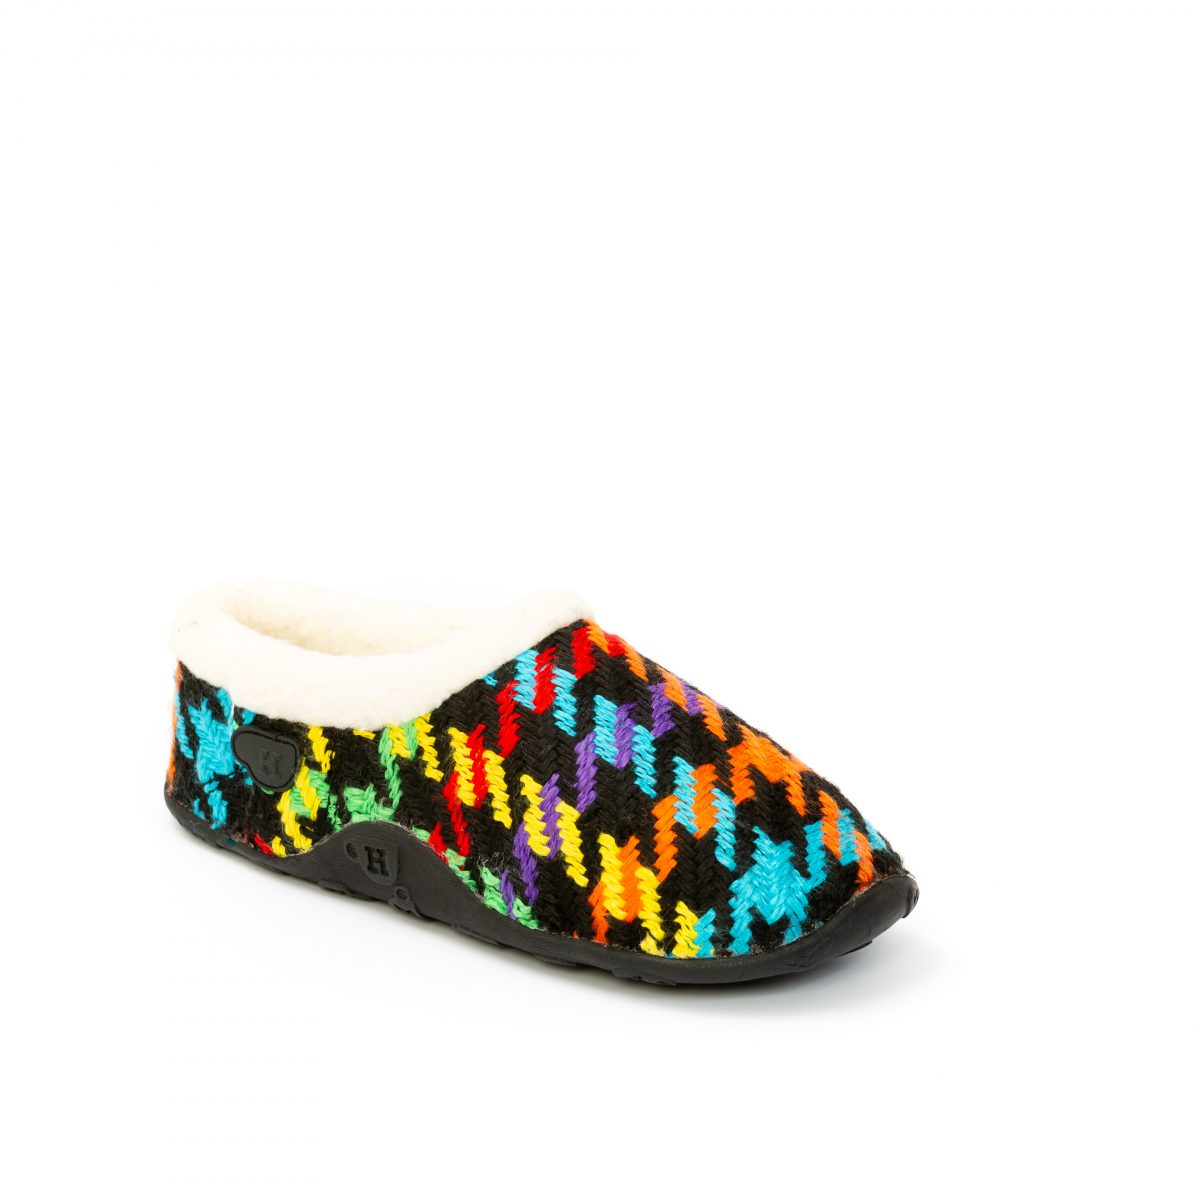 Wanda-Blk-with-multi-colour-dogtooth-01.jpg